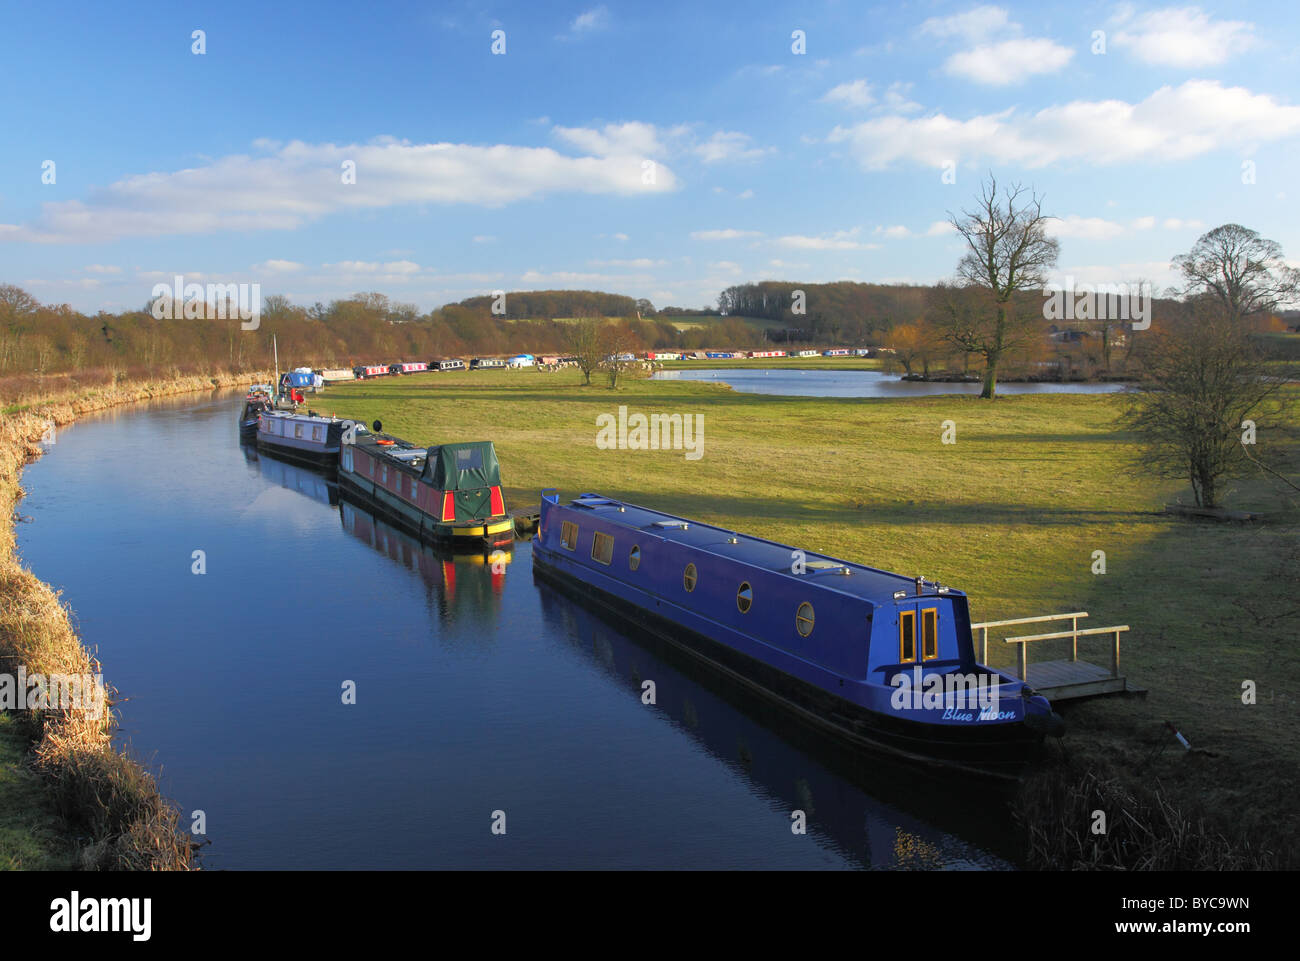 Barges moored on the Ashby canal at Shackerstone in Leicestershire - Stock Image